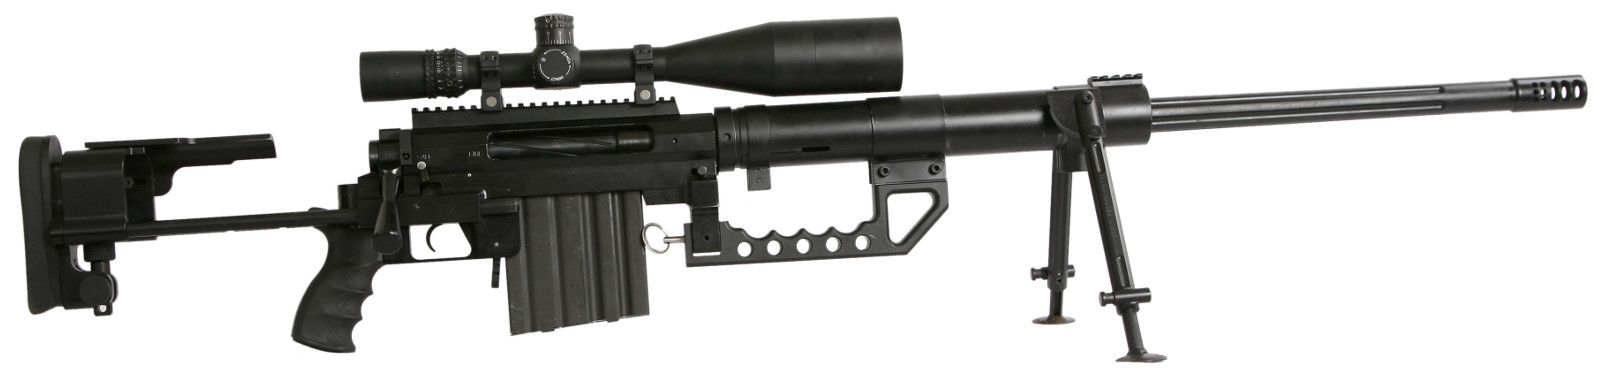 파일:attachment/CheyTac Intervention/f.jpg